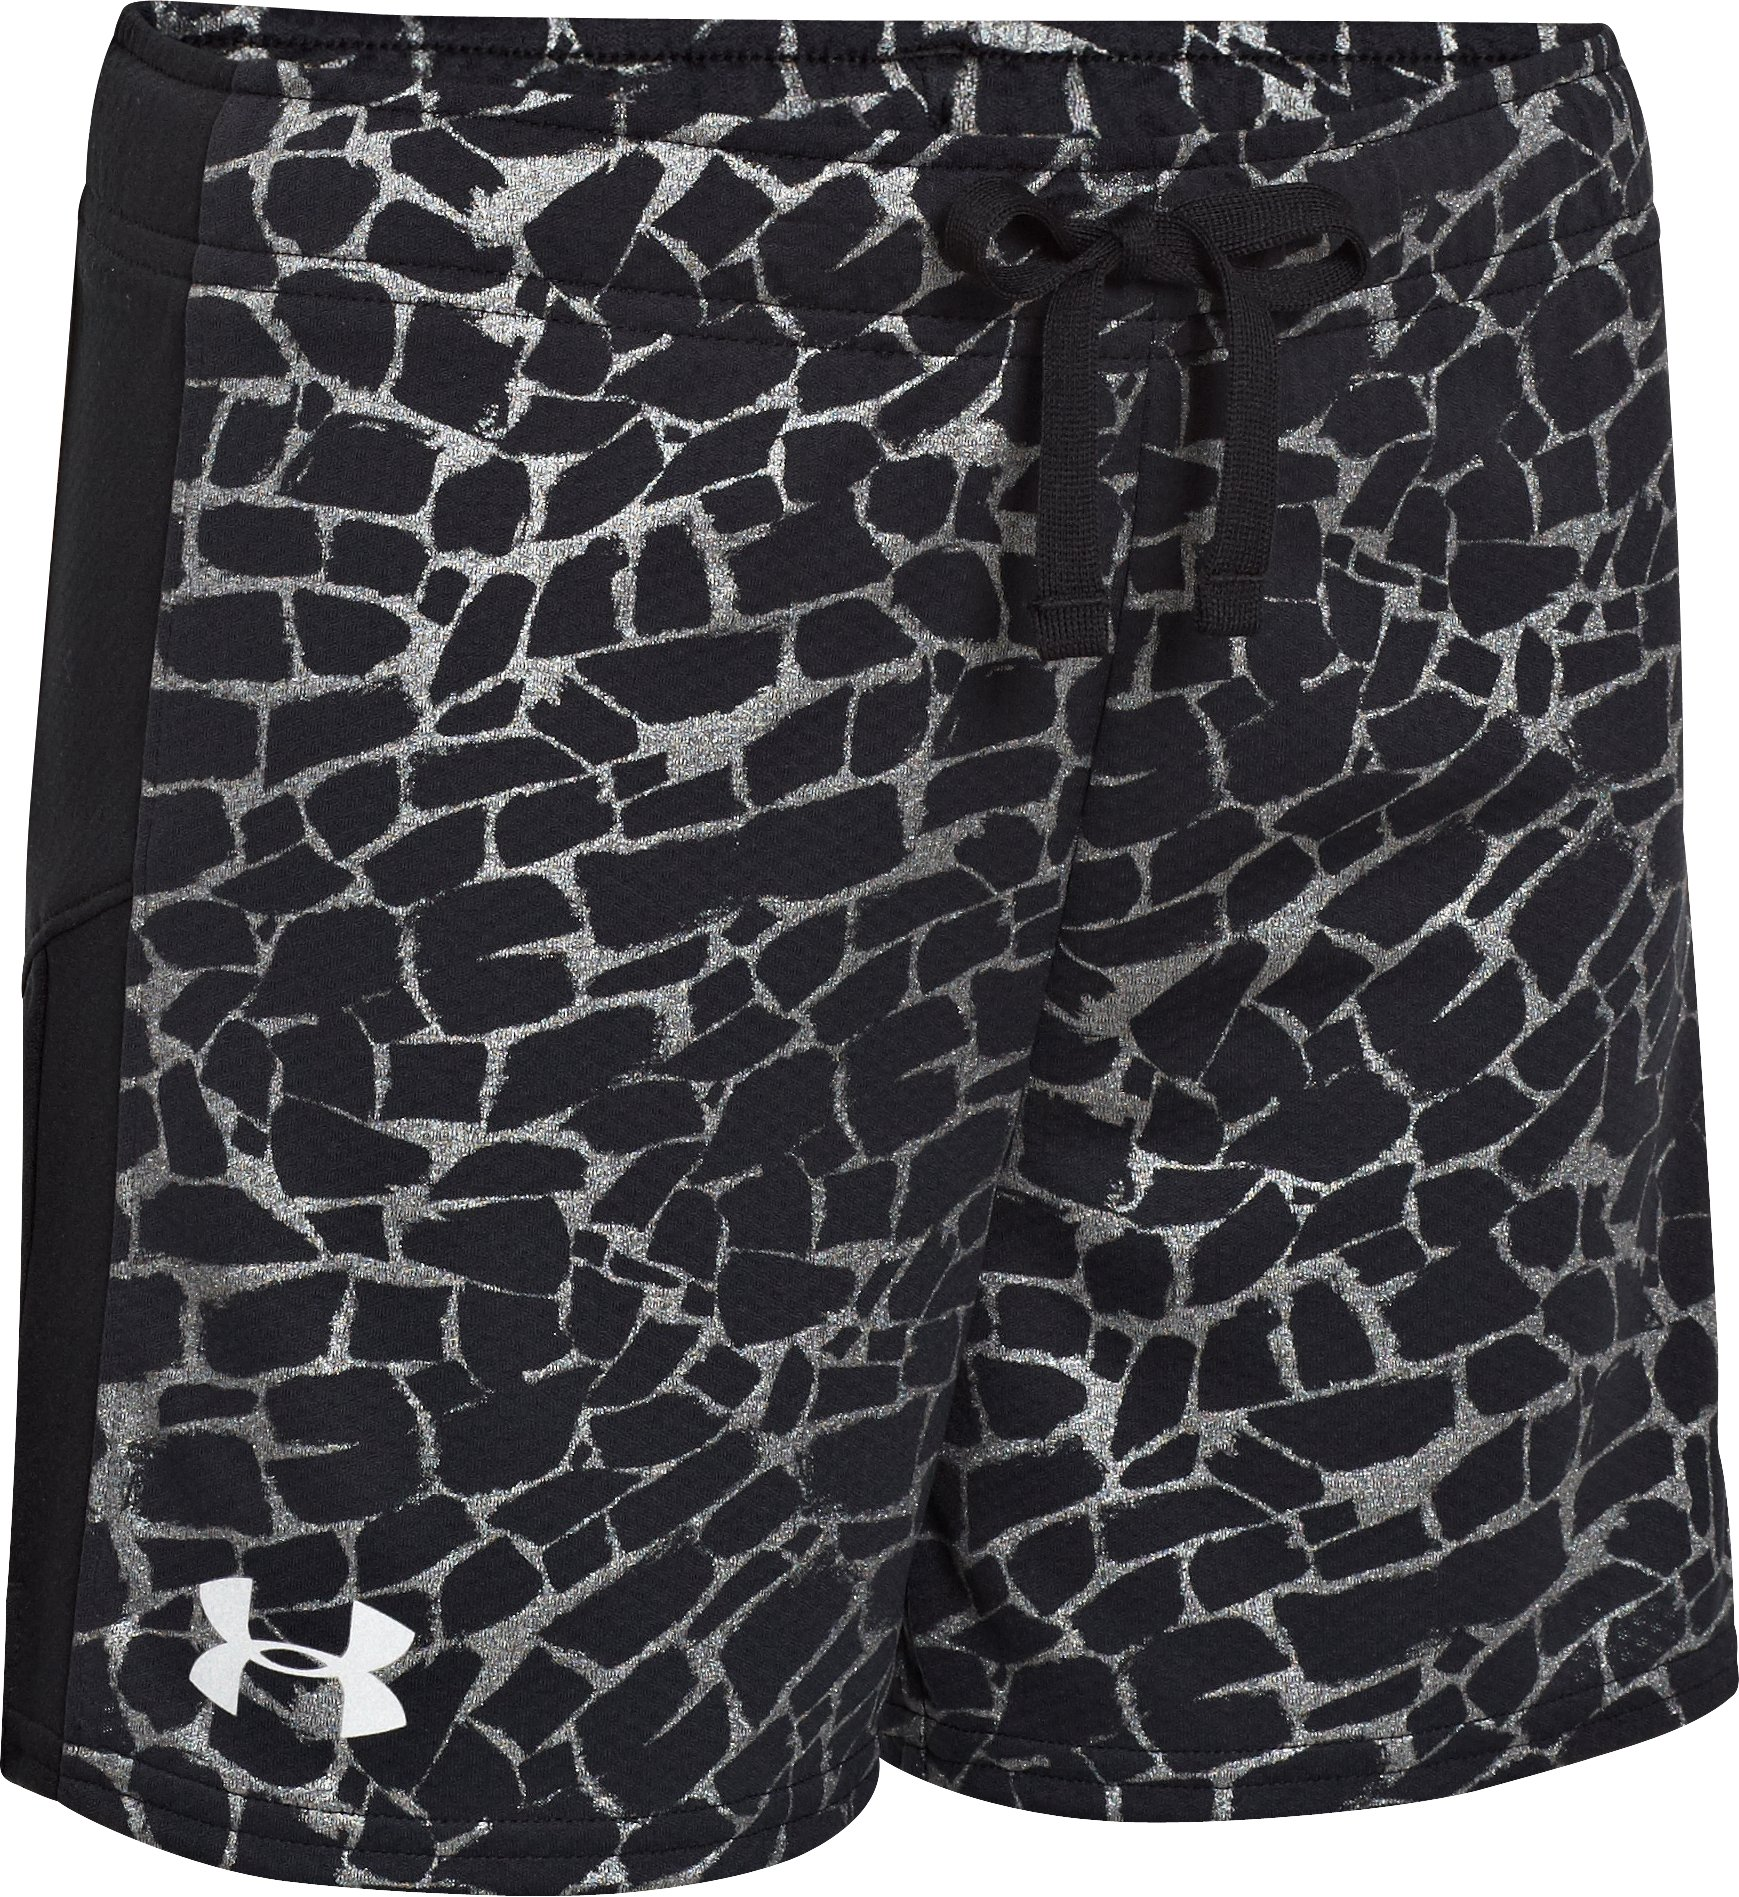 Girls' UA Intensity Print Shorts, Black , zoomed image